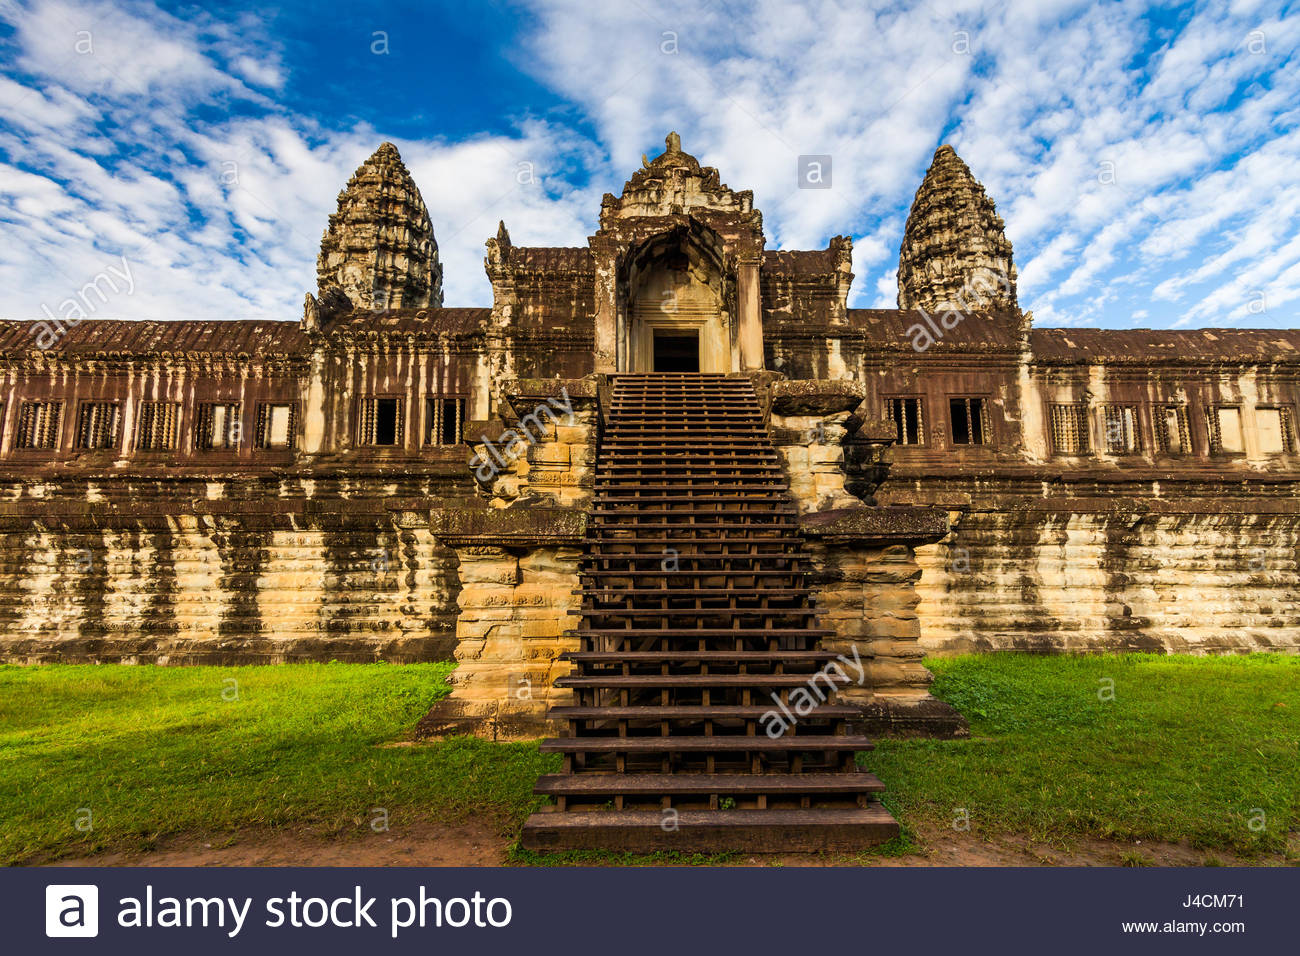 Ancient temple against a beautiful sky. Angkor Wat, Cambodia. - Stock Image